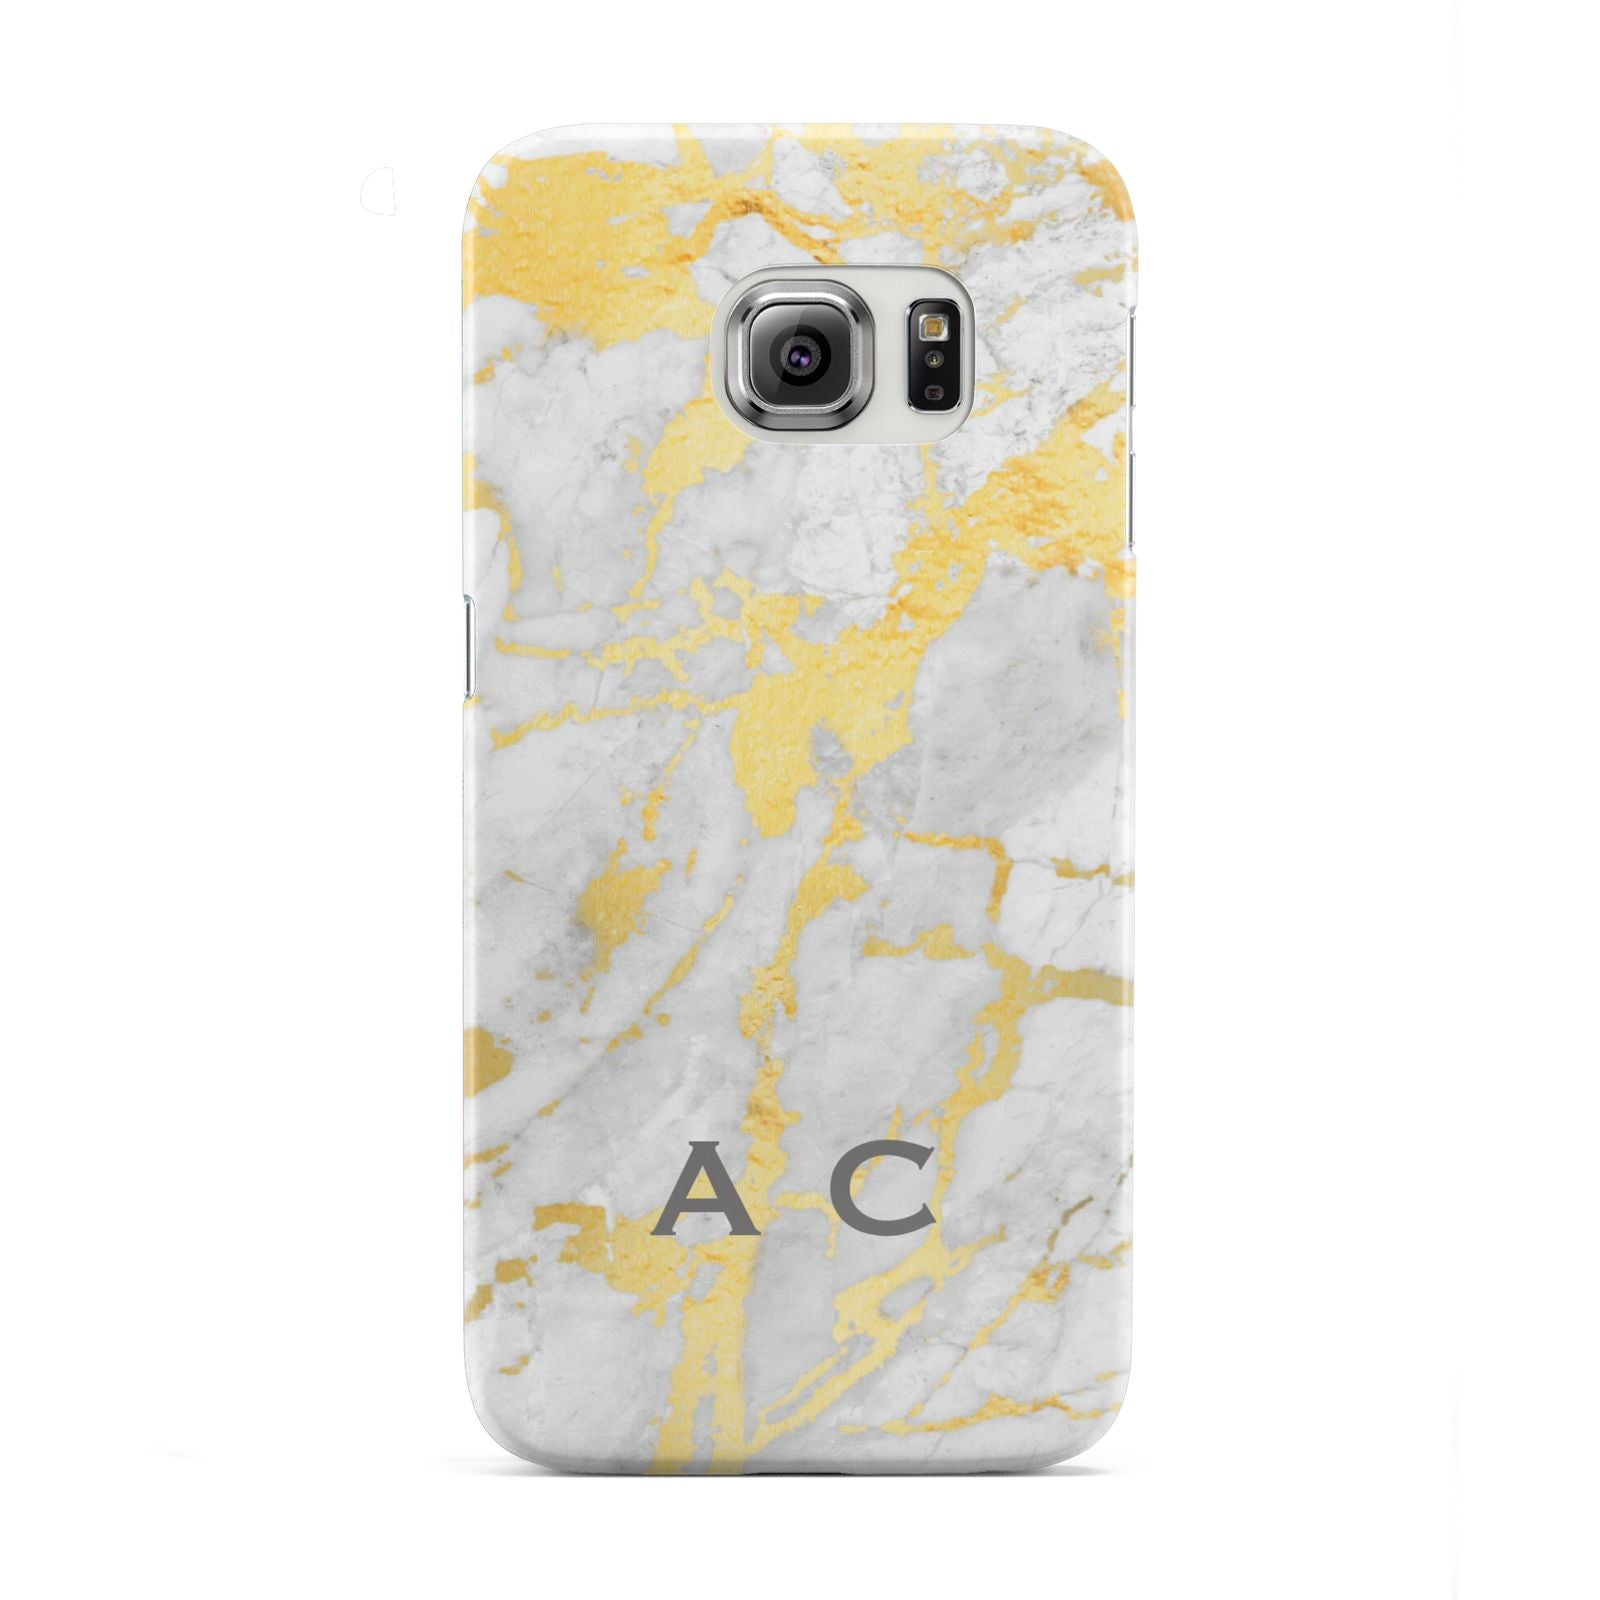 Gold Marble Initials Personalised Samsung Galaxy S6 Edge Case